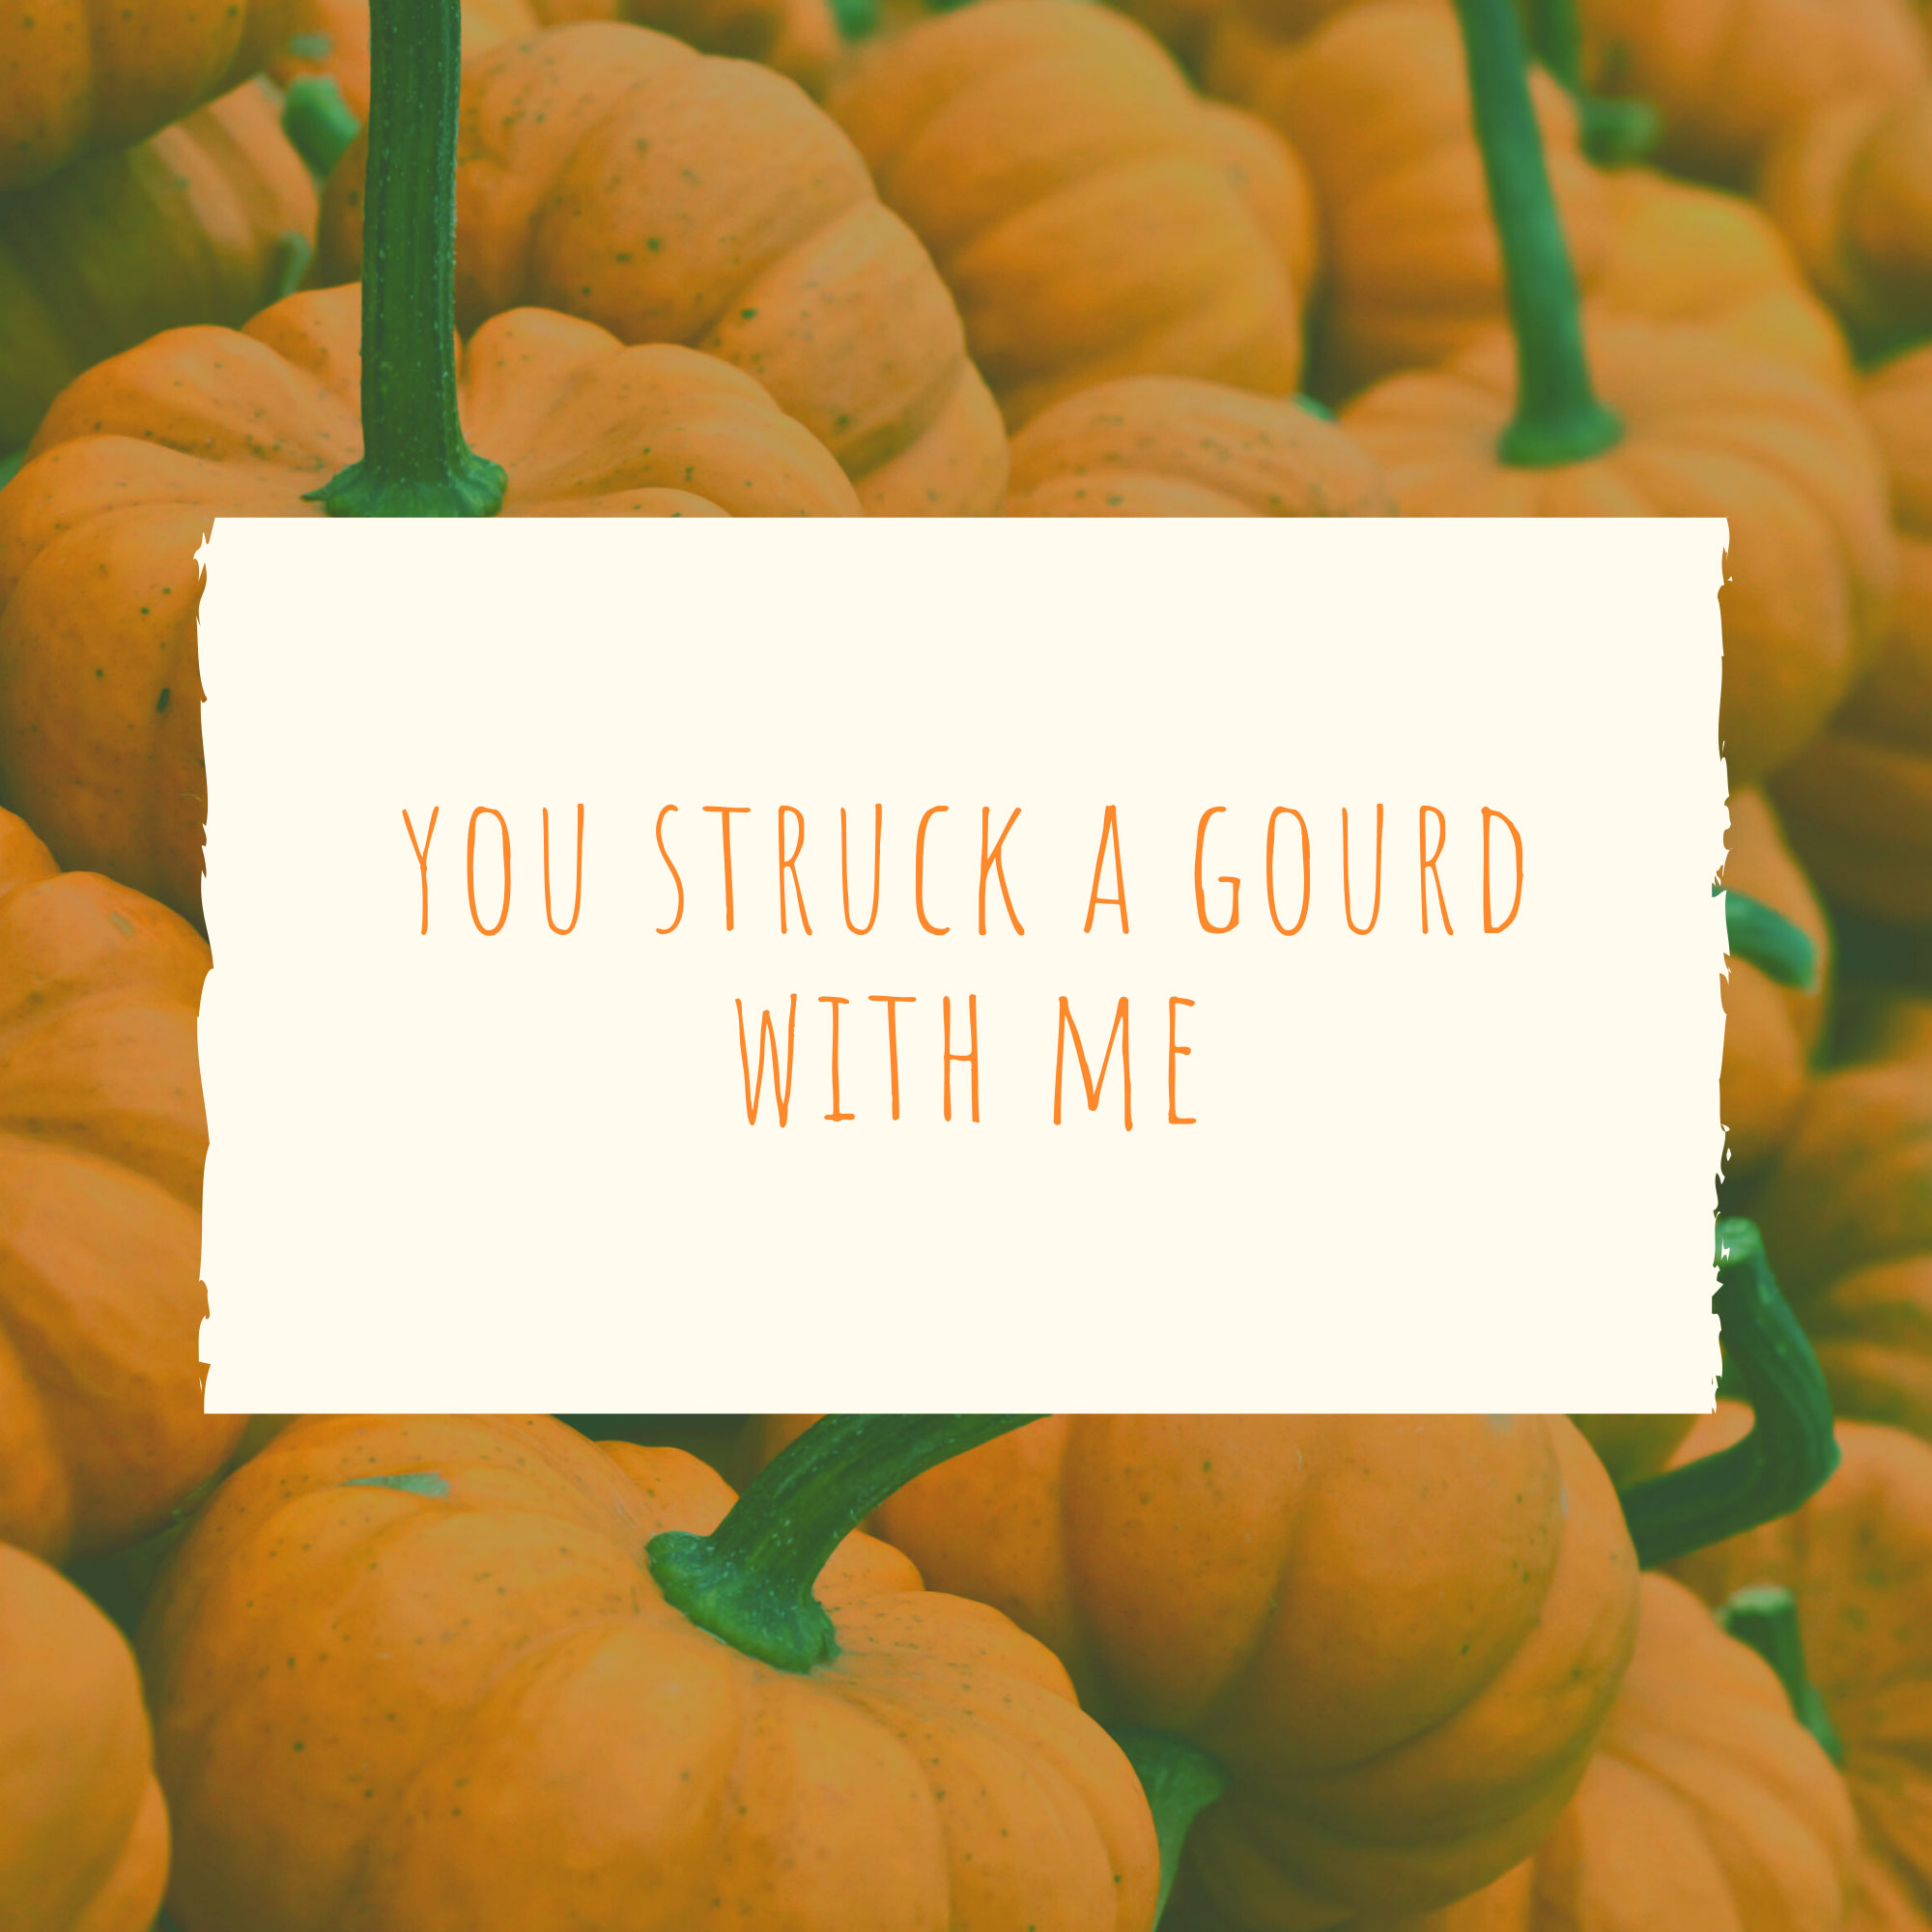 You struck a gourd with me.   Pumpkin Patch Captions